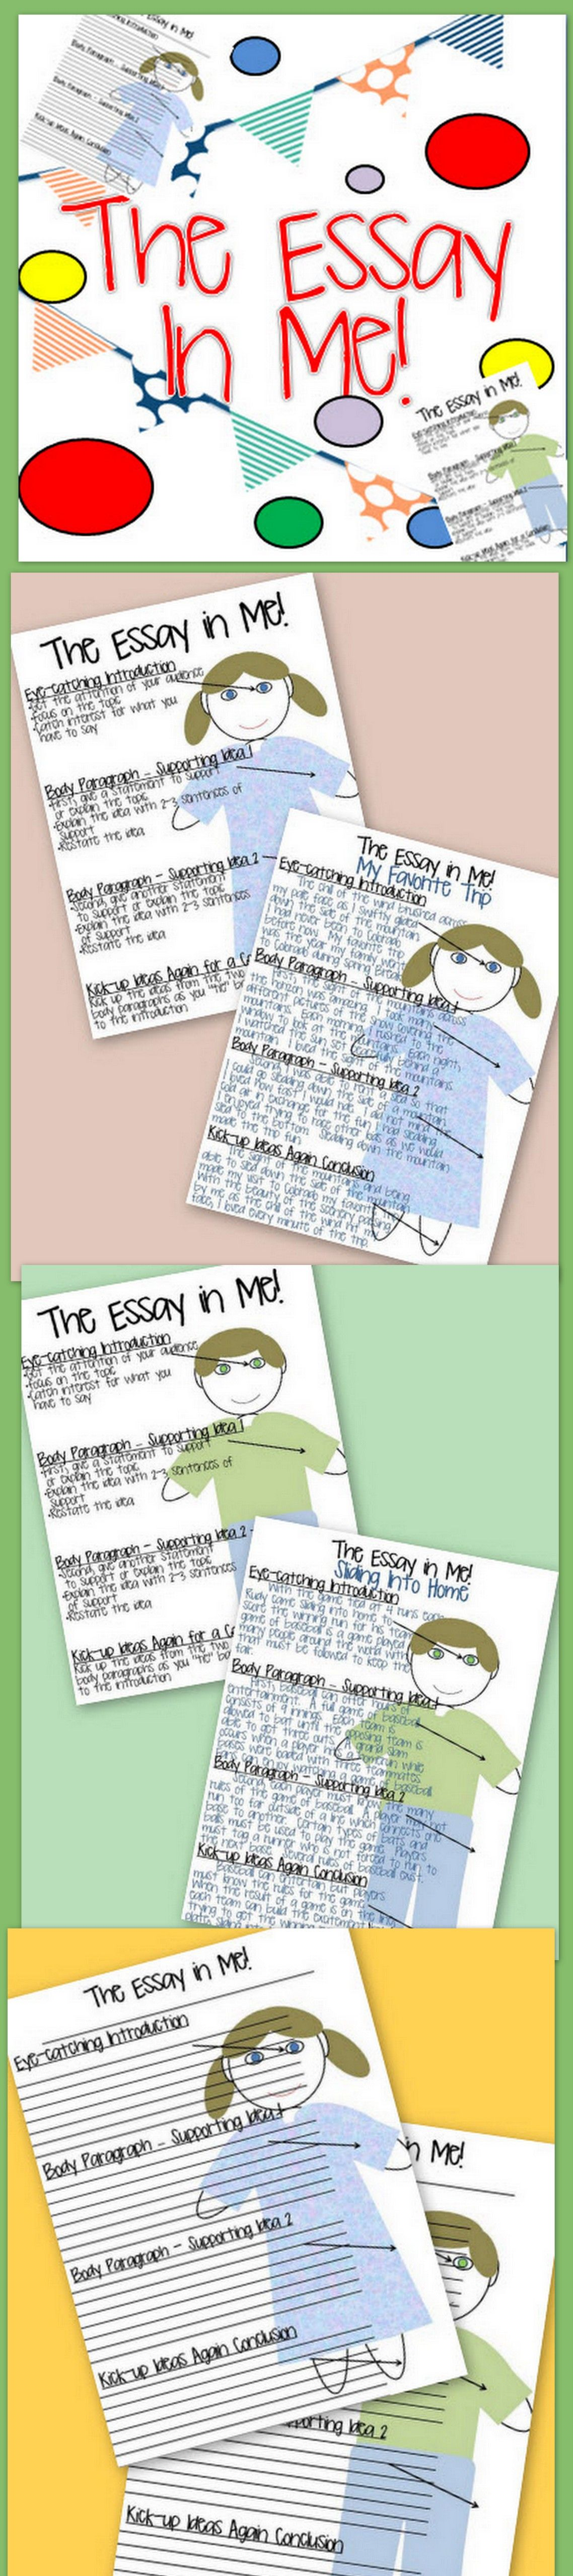 Writing An Essay Graphic Organizer The Essay In Me